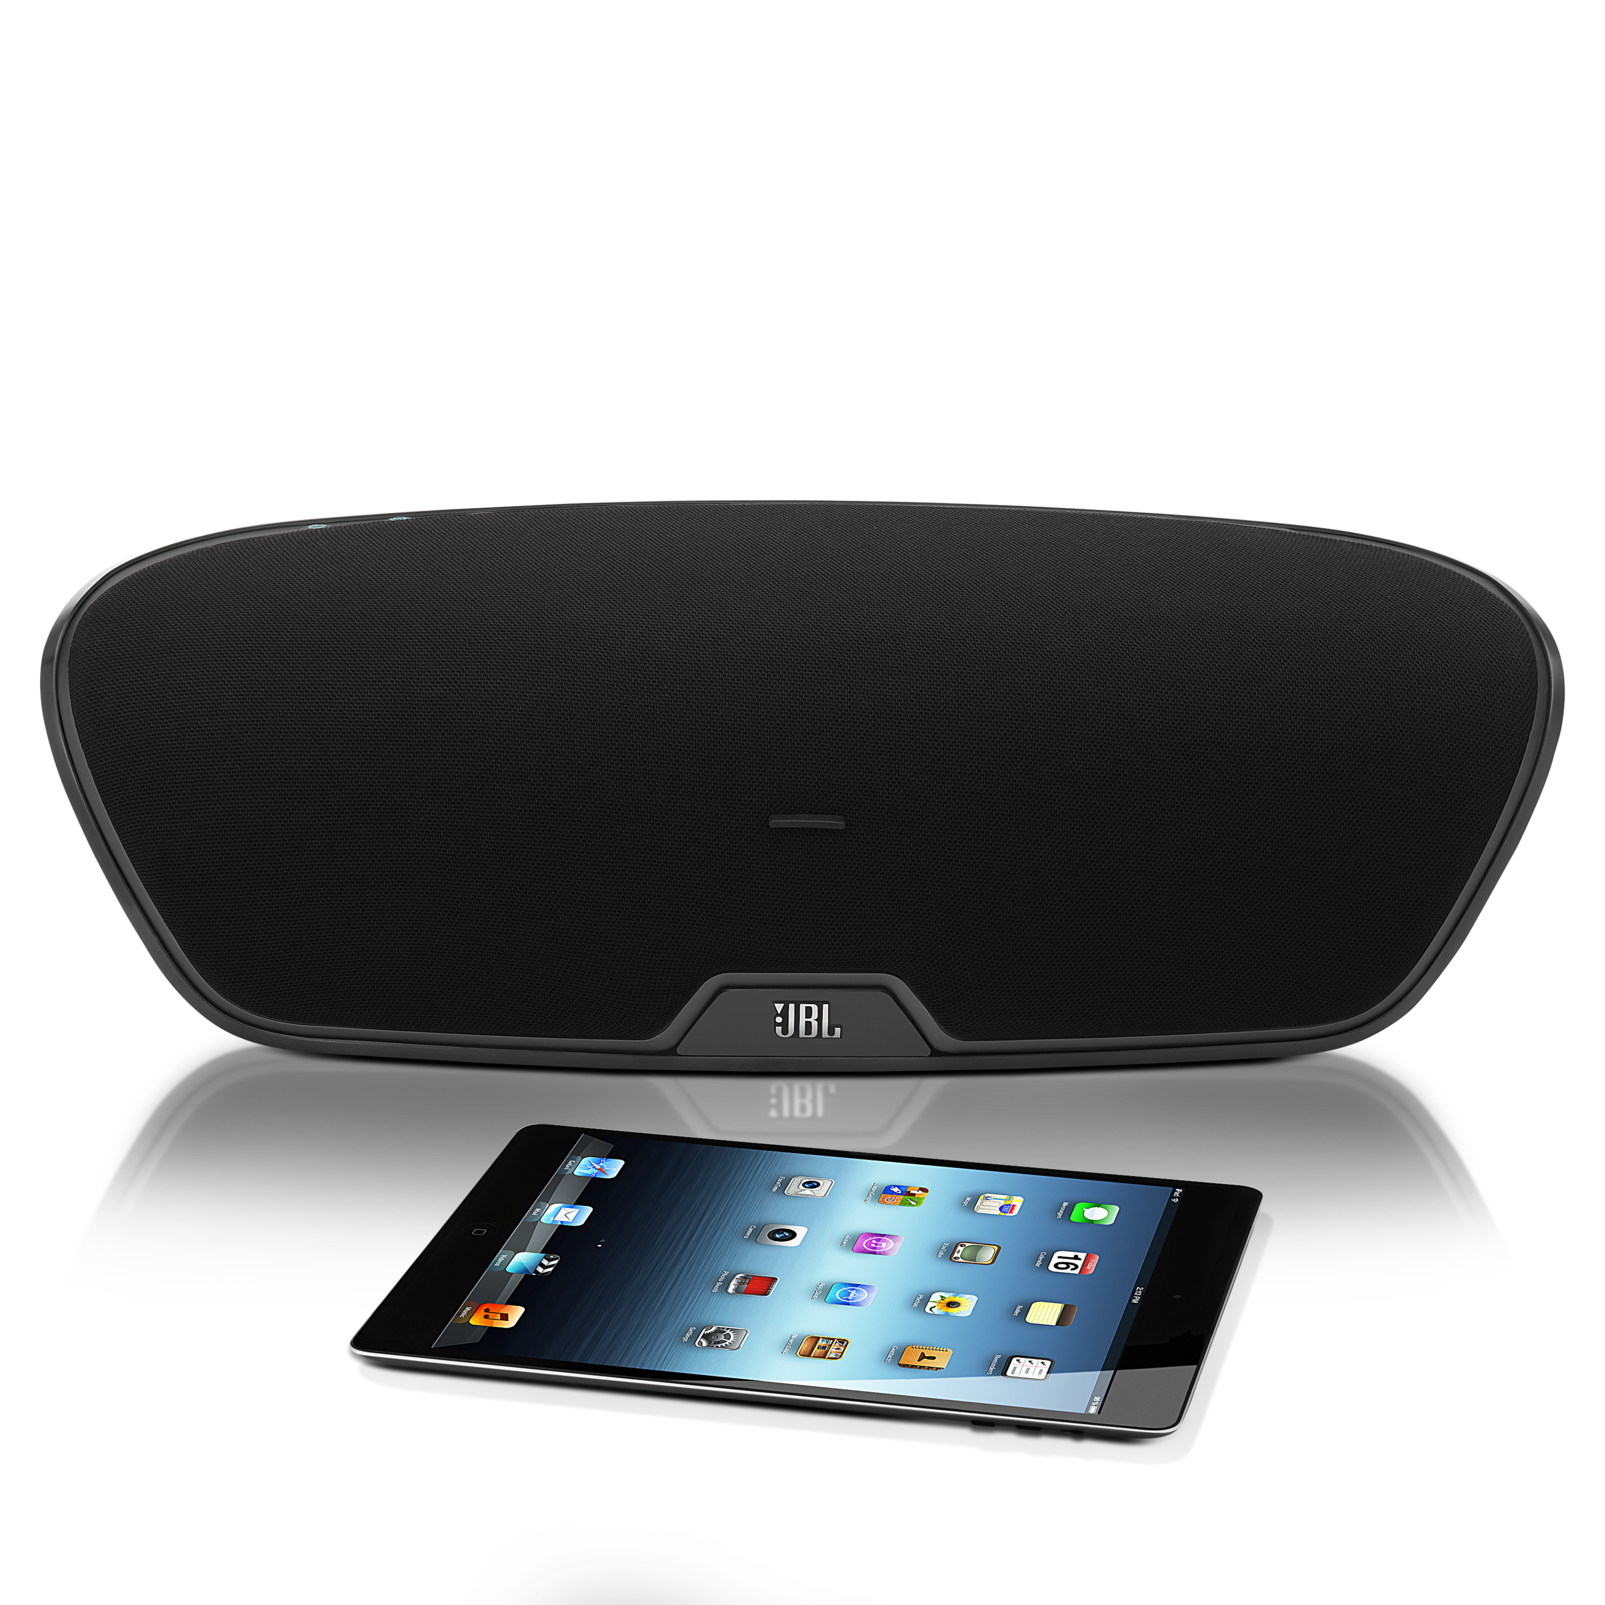 Jbl Onbeat Venue Lt Wireless Bluetooth Speaker Dock For Iphone5 Download Image Voice Activated Circuit Pc Android Iphone And Ipad Lightning